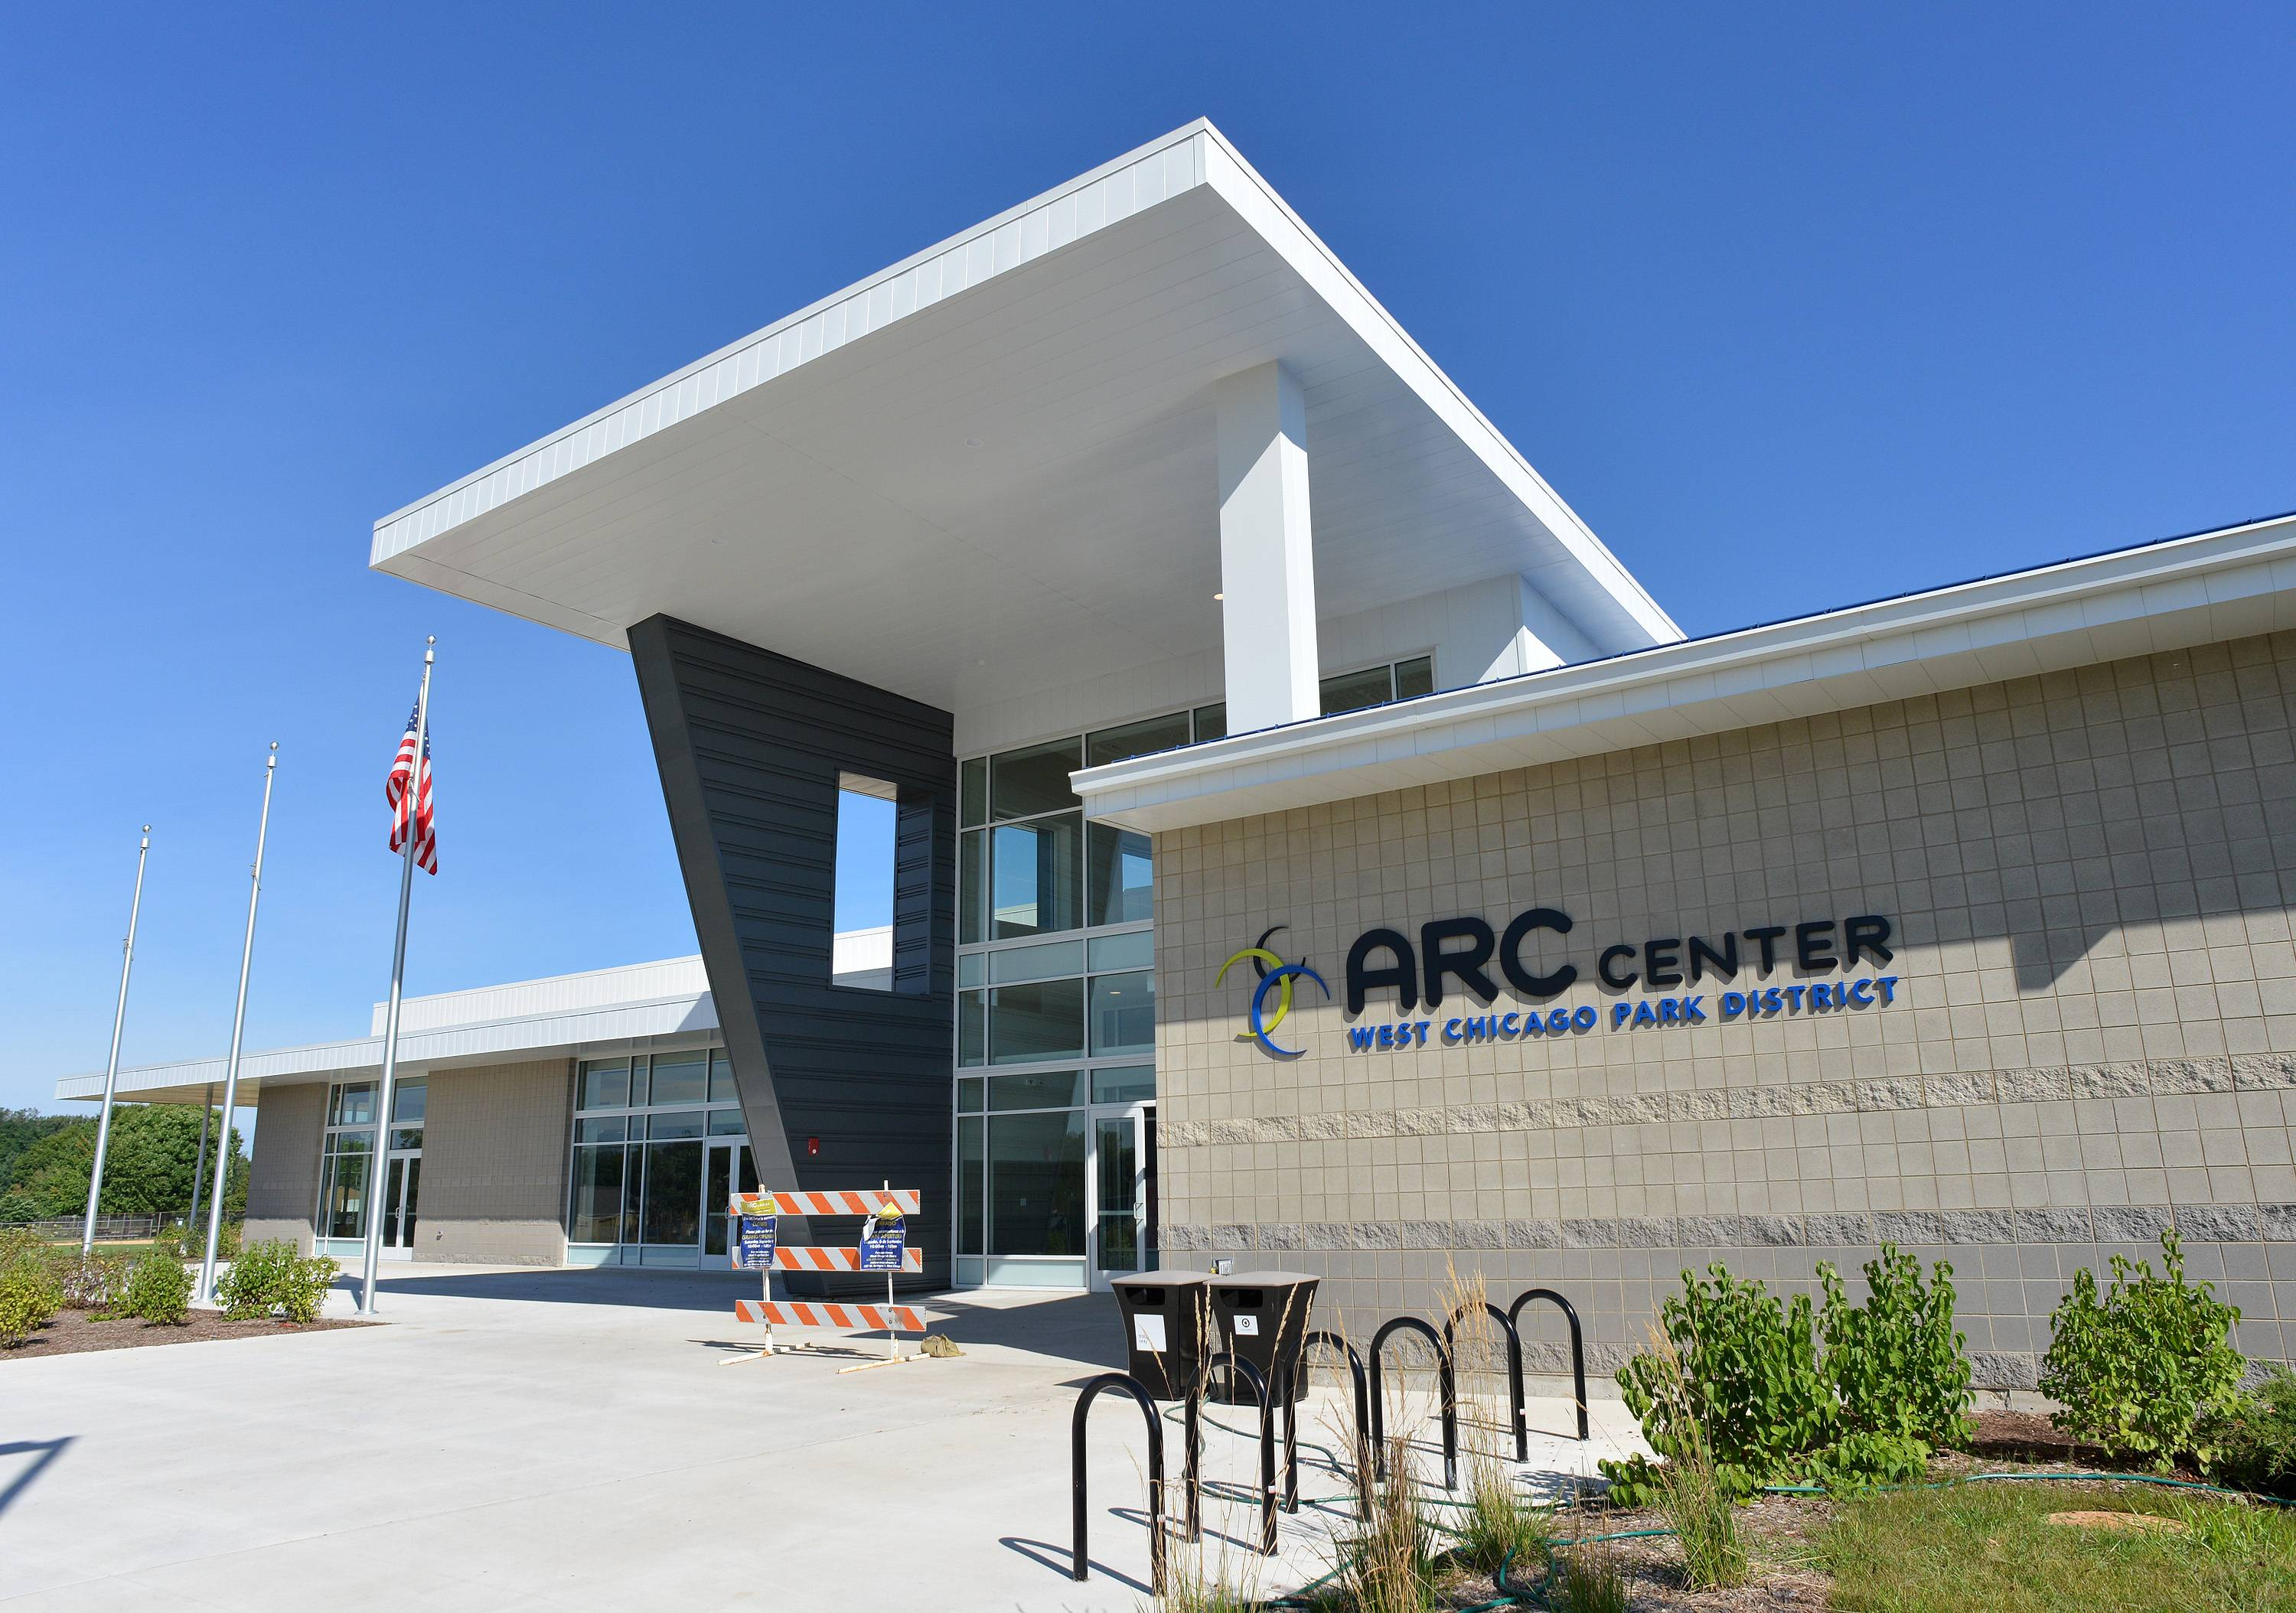 West Chicago Park District residents can get a sneak peek at their new ARC Center (Athletics, Recreation, Community) during grand opening ceremonies from 10 a.m. until 1 p.m. Saturday, Sept. 6, in Reed-Keppler Park. The 70,000-square-foot recreation center will open for good at 5:30 a.m. Monday, Sept. 8.